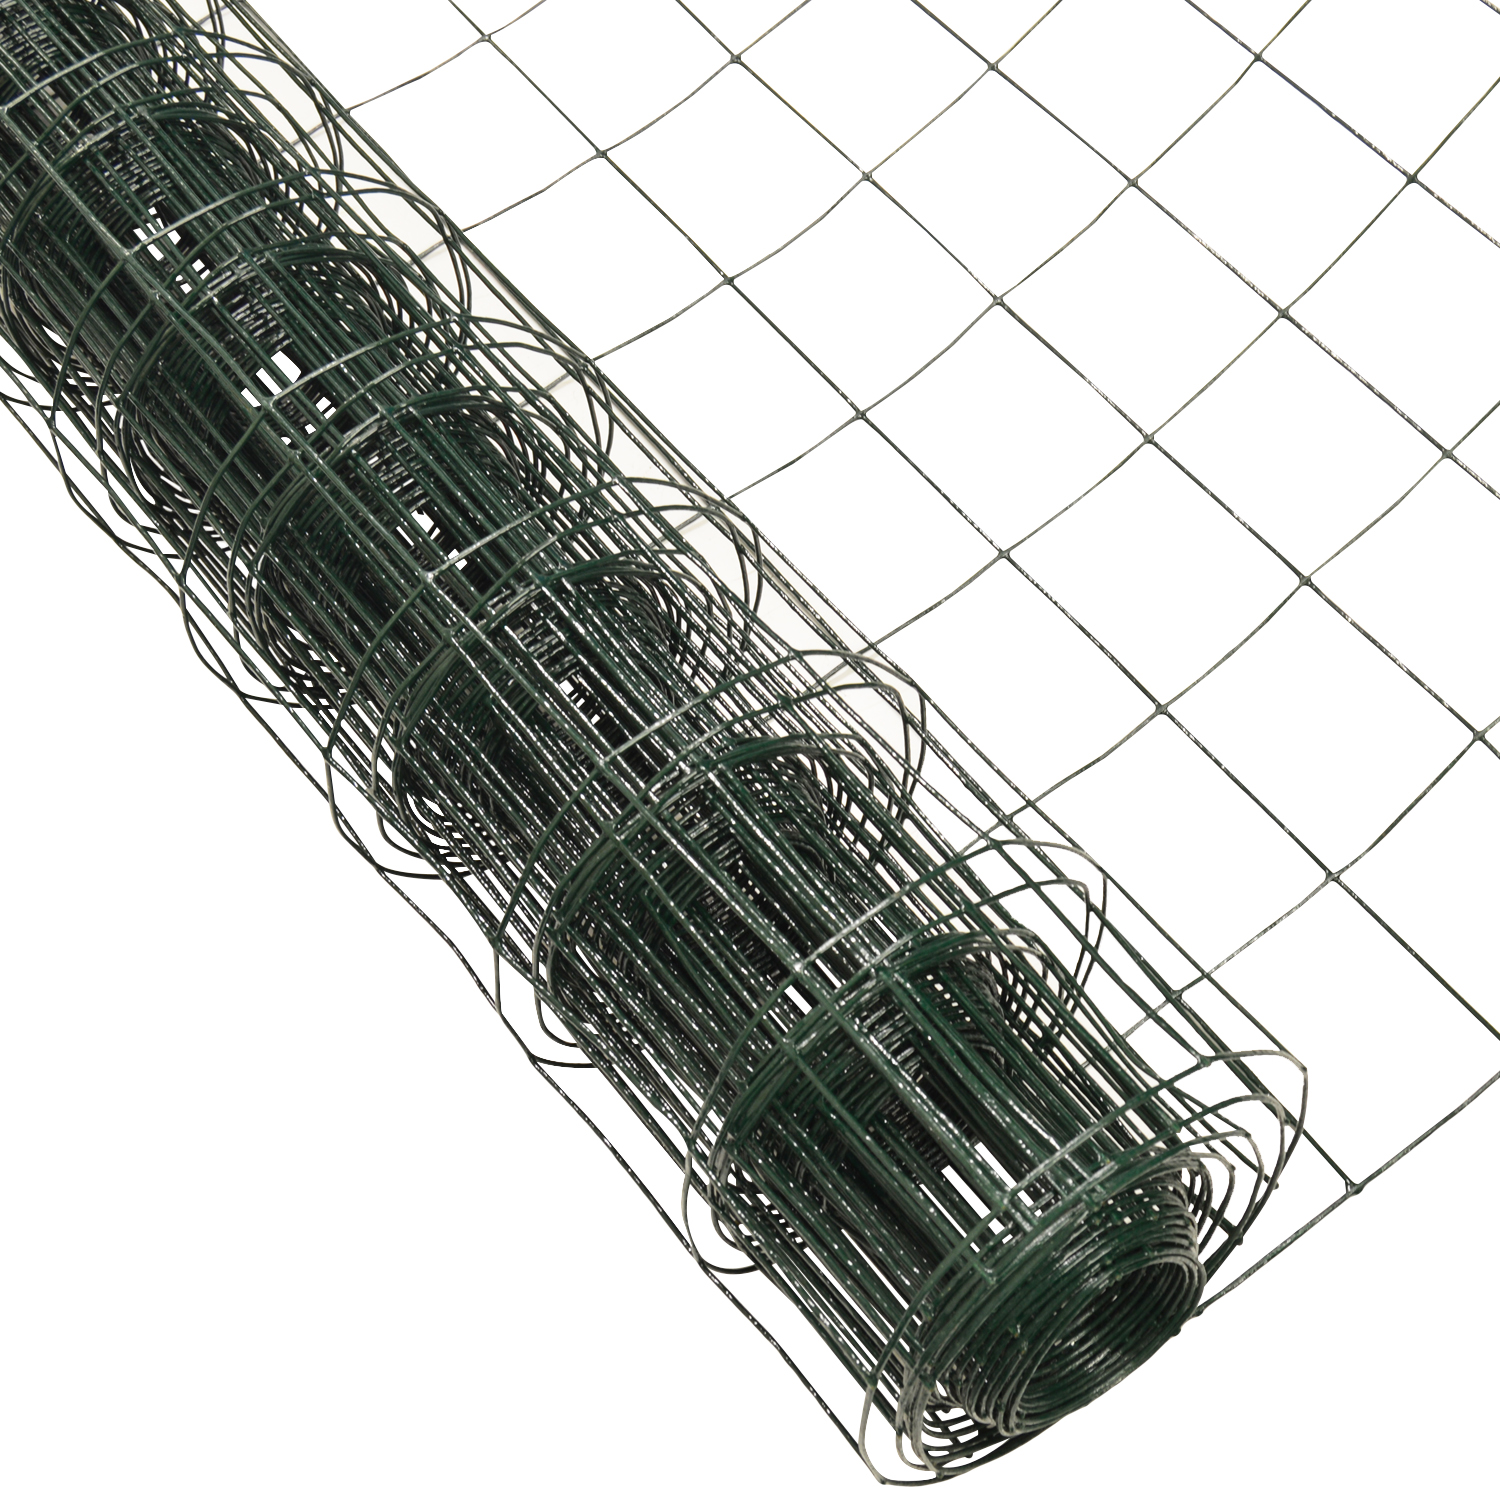 Woodside Green PVC Coated Wire Mesh Border Fencing Rabbit Chicken Fence EBay